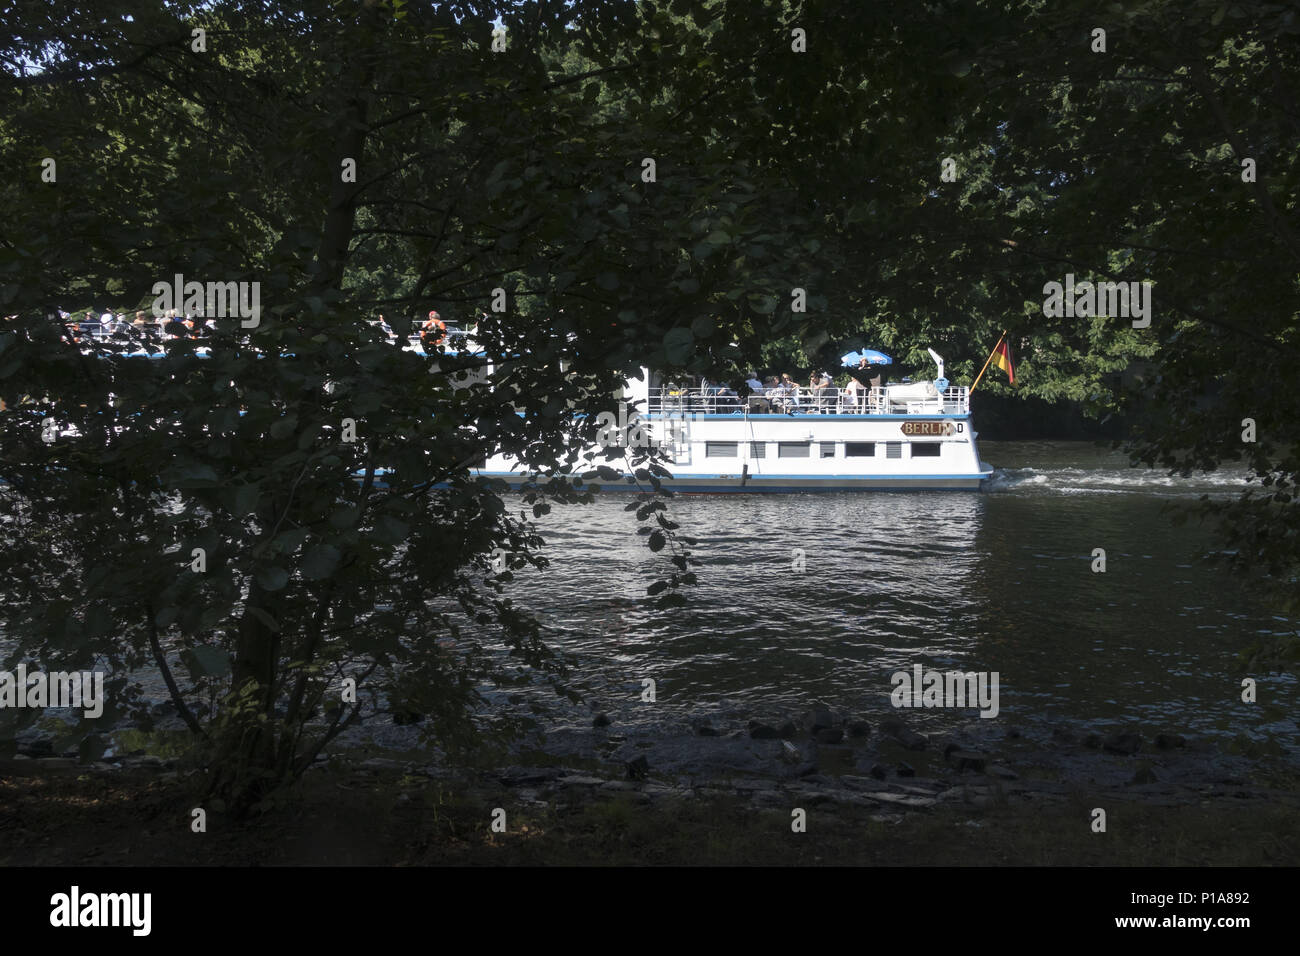 Berlin, Germany, Passenger ship travels through a canal - Stock Image